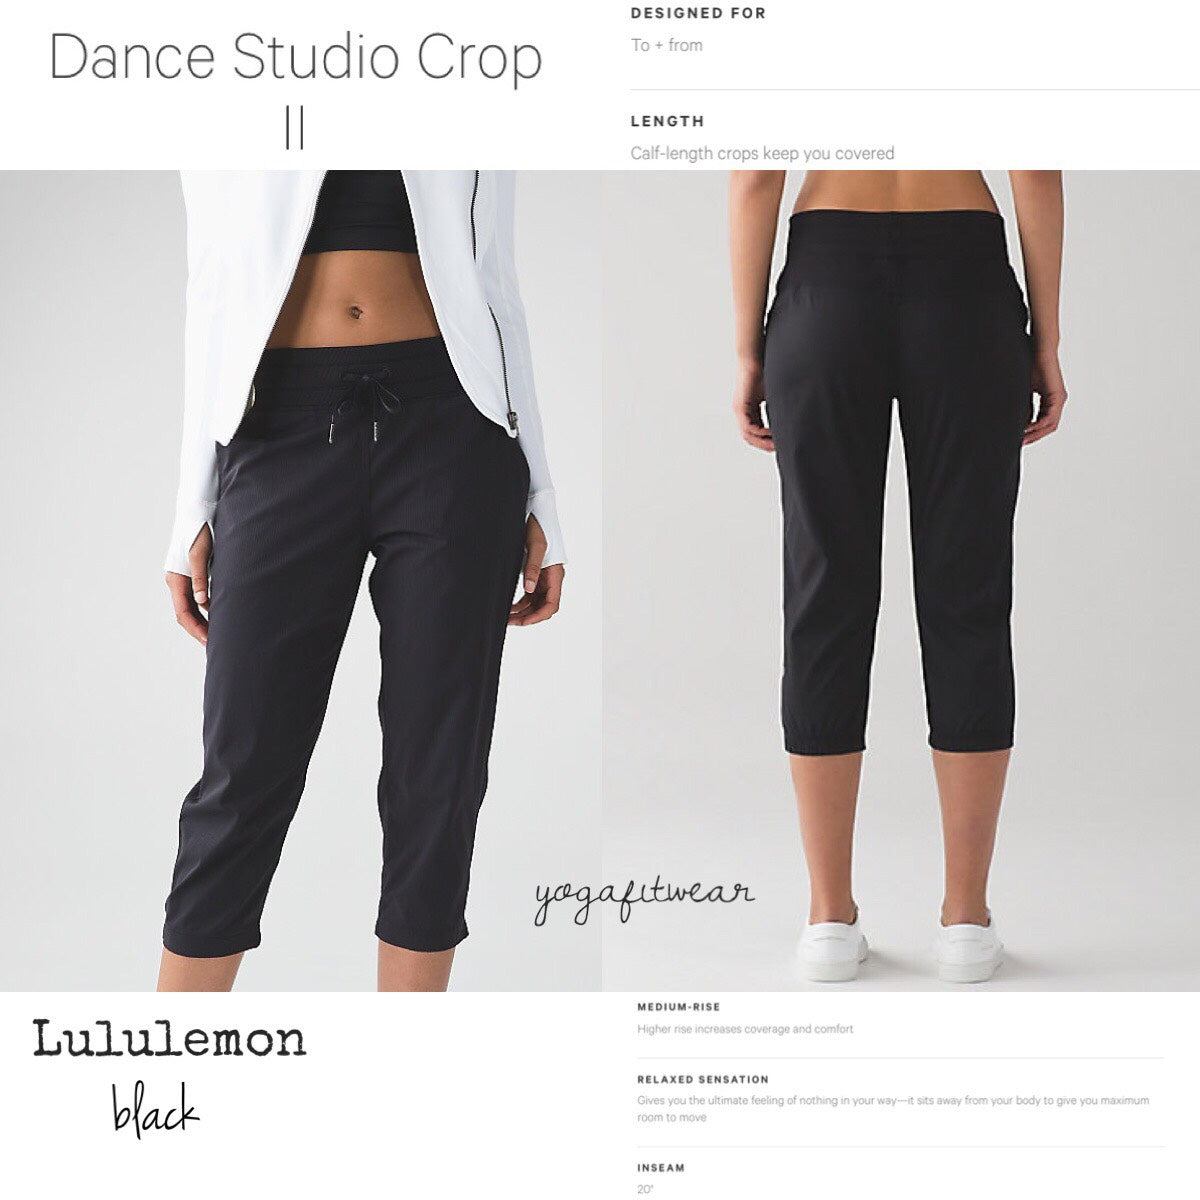 Lululemon - Dance Studio CropII*Unlined20